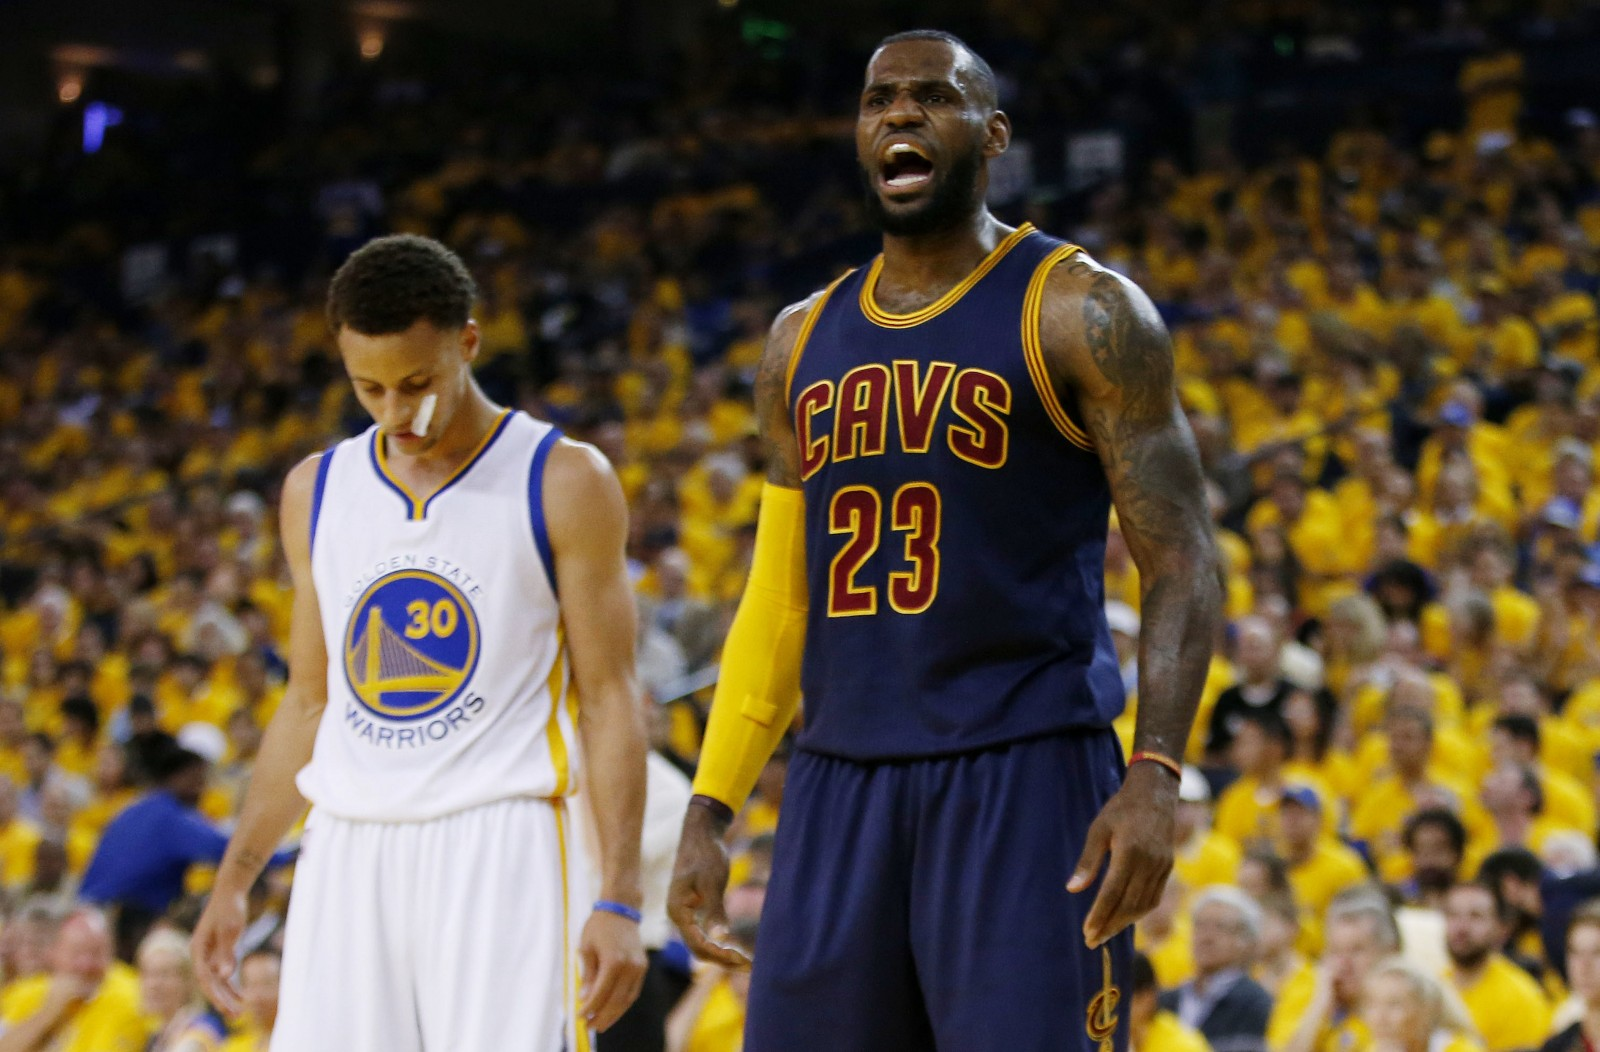 Golden State's Steph Curry and Cleveland's LeBron James are prepared for another meeting. (Getty Images)